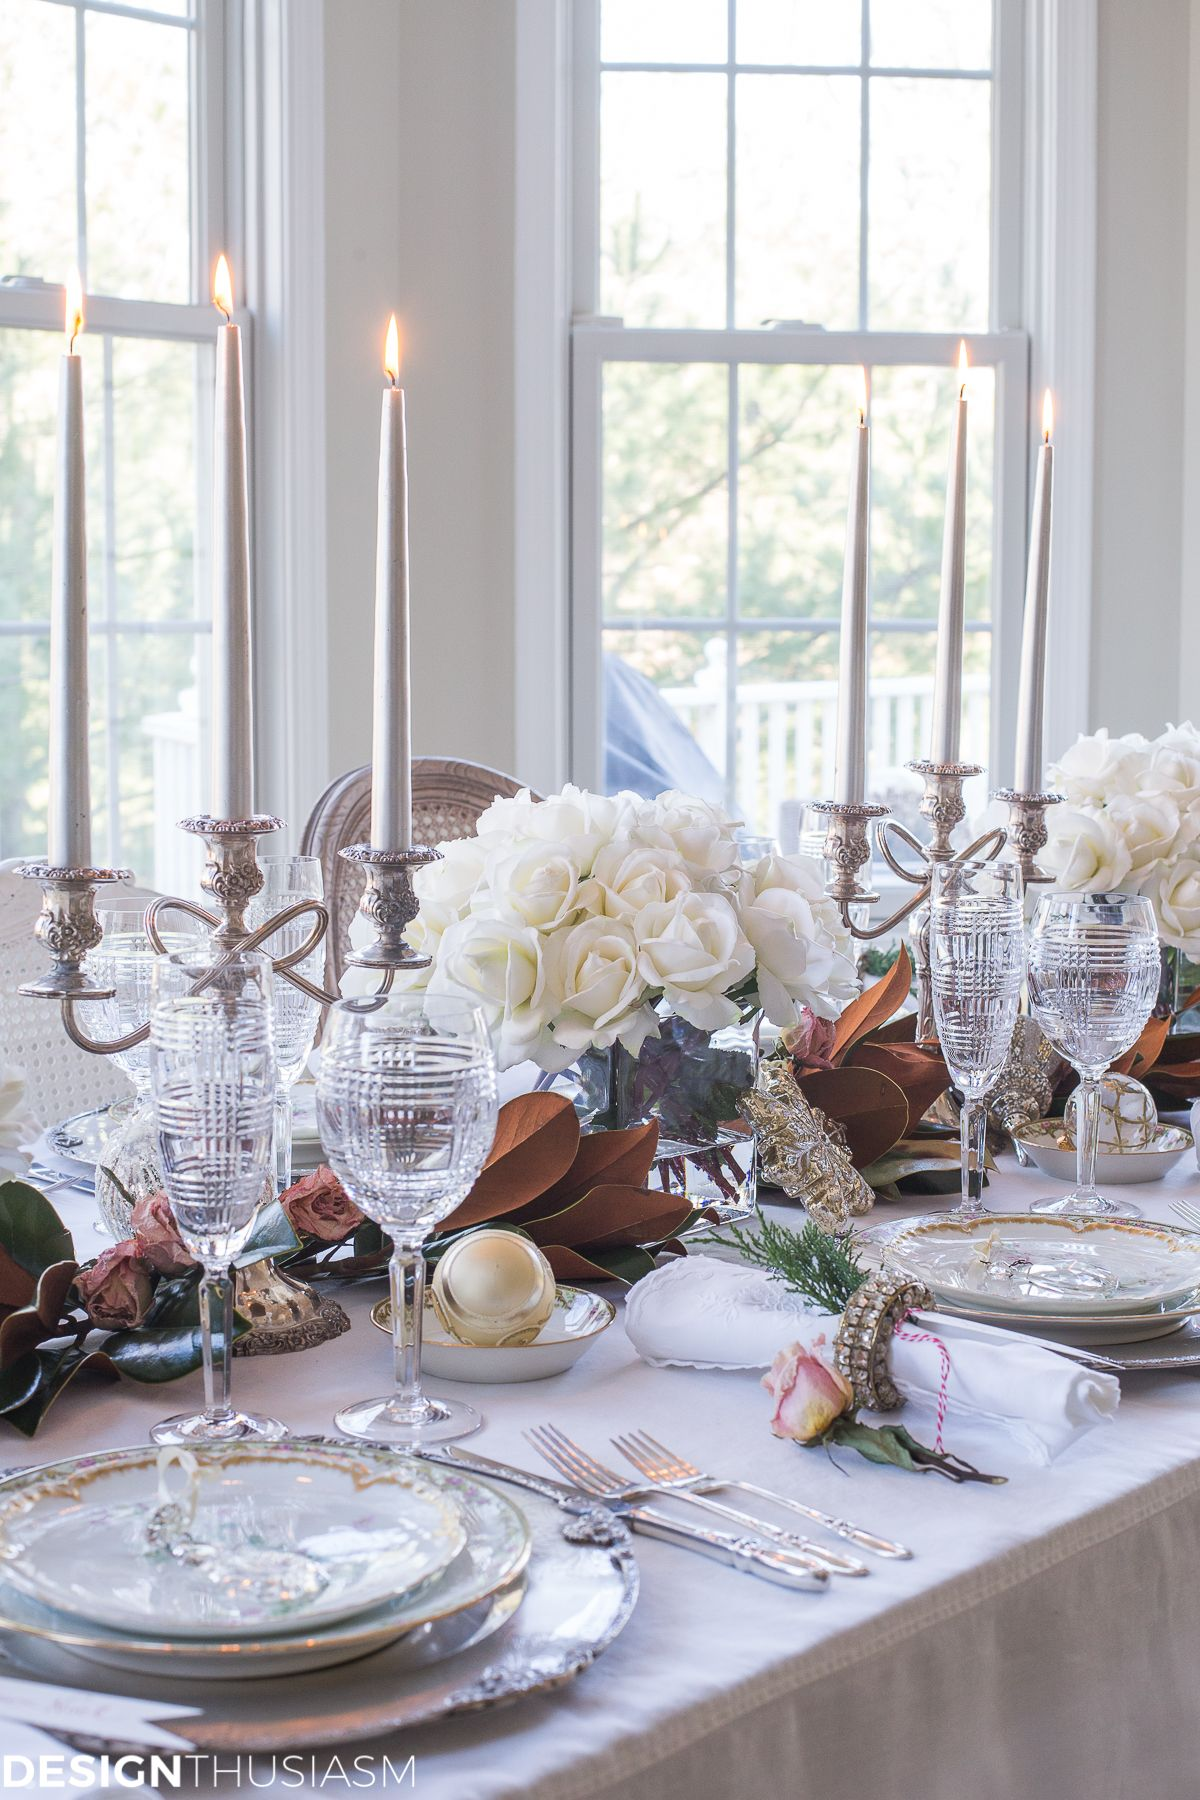 Holiday Table Settings White Roses And Magnolia Leaves Holiday Table Settings Christmas Table Settings Table Settings